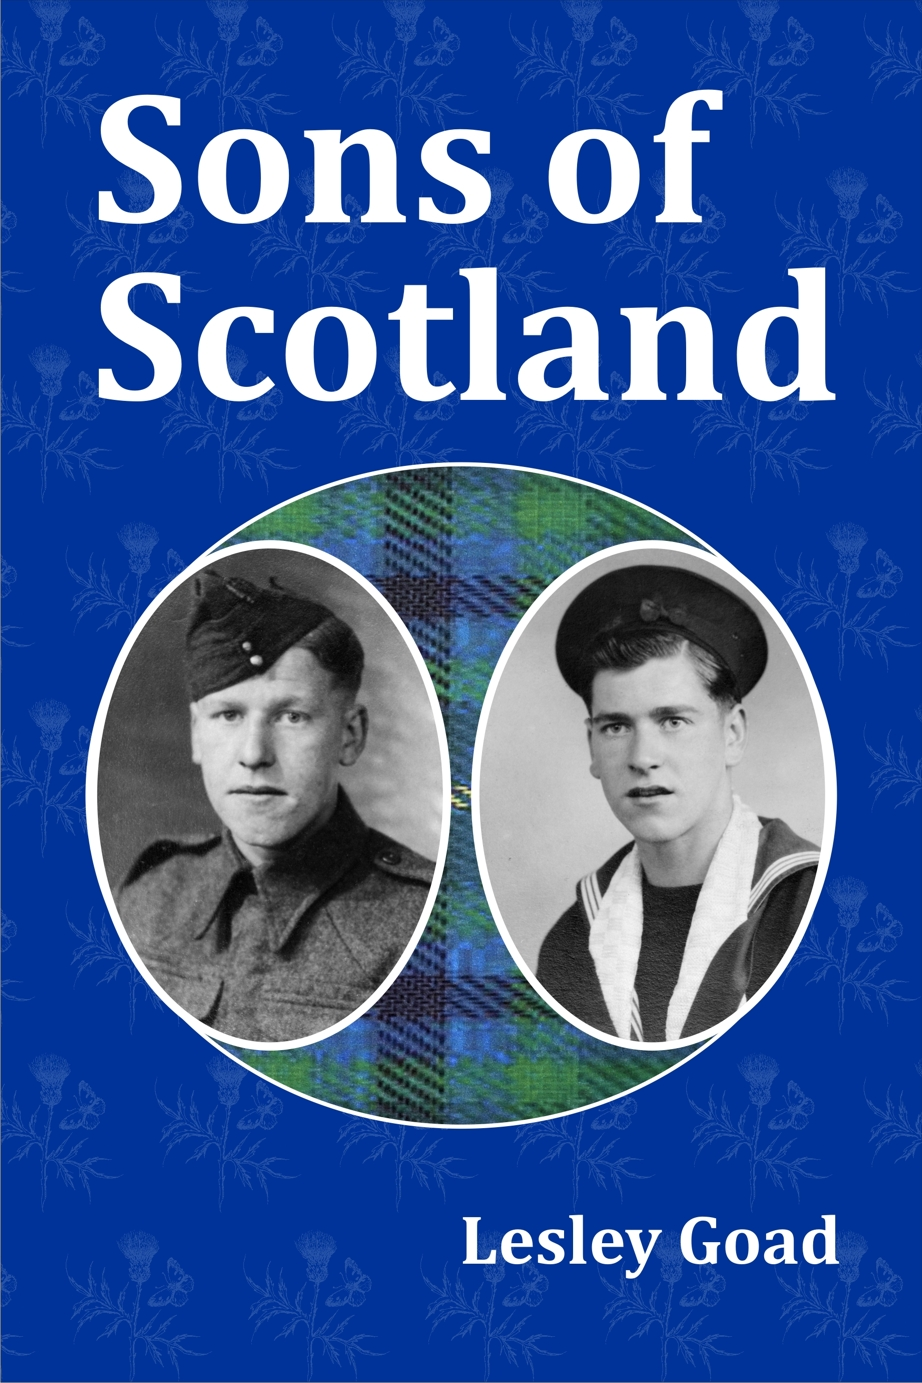 Sons of Scotland cover